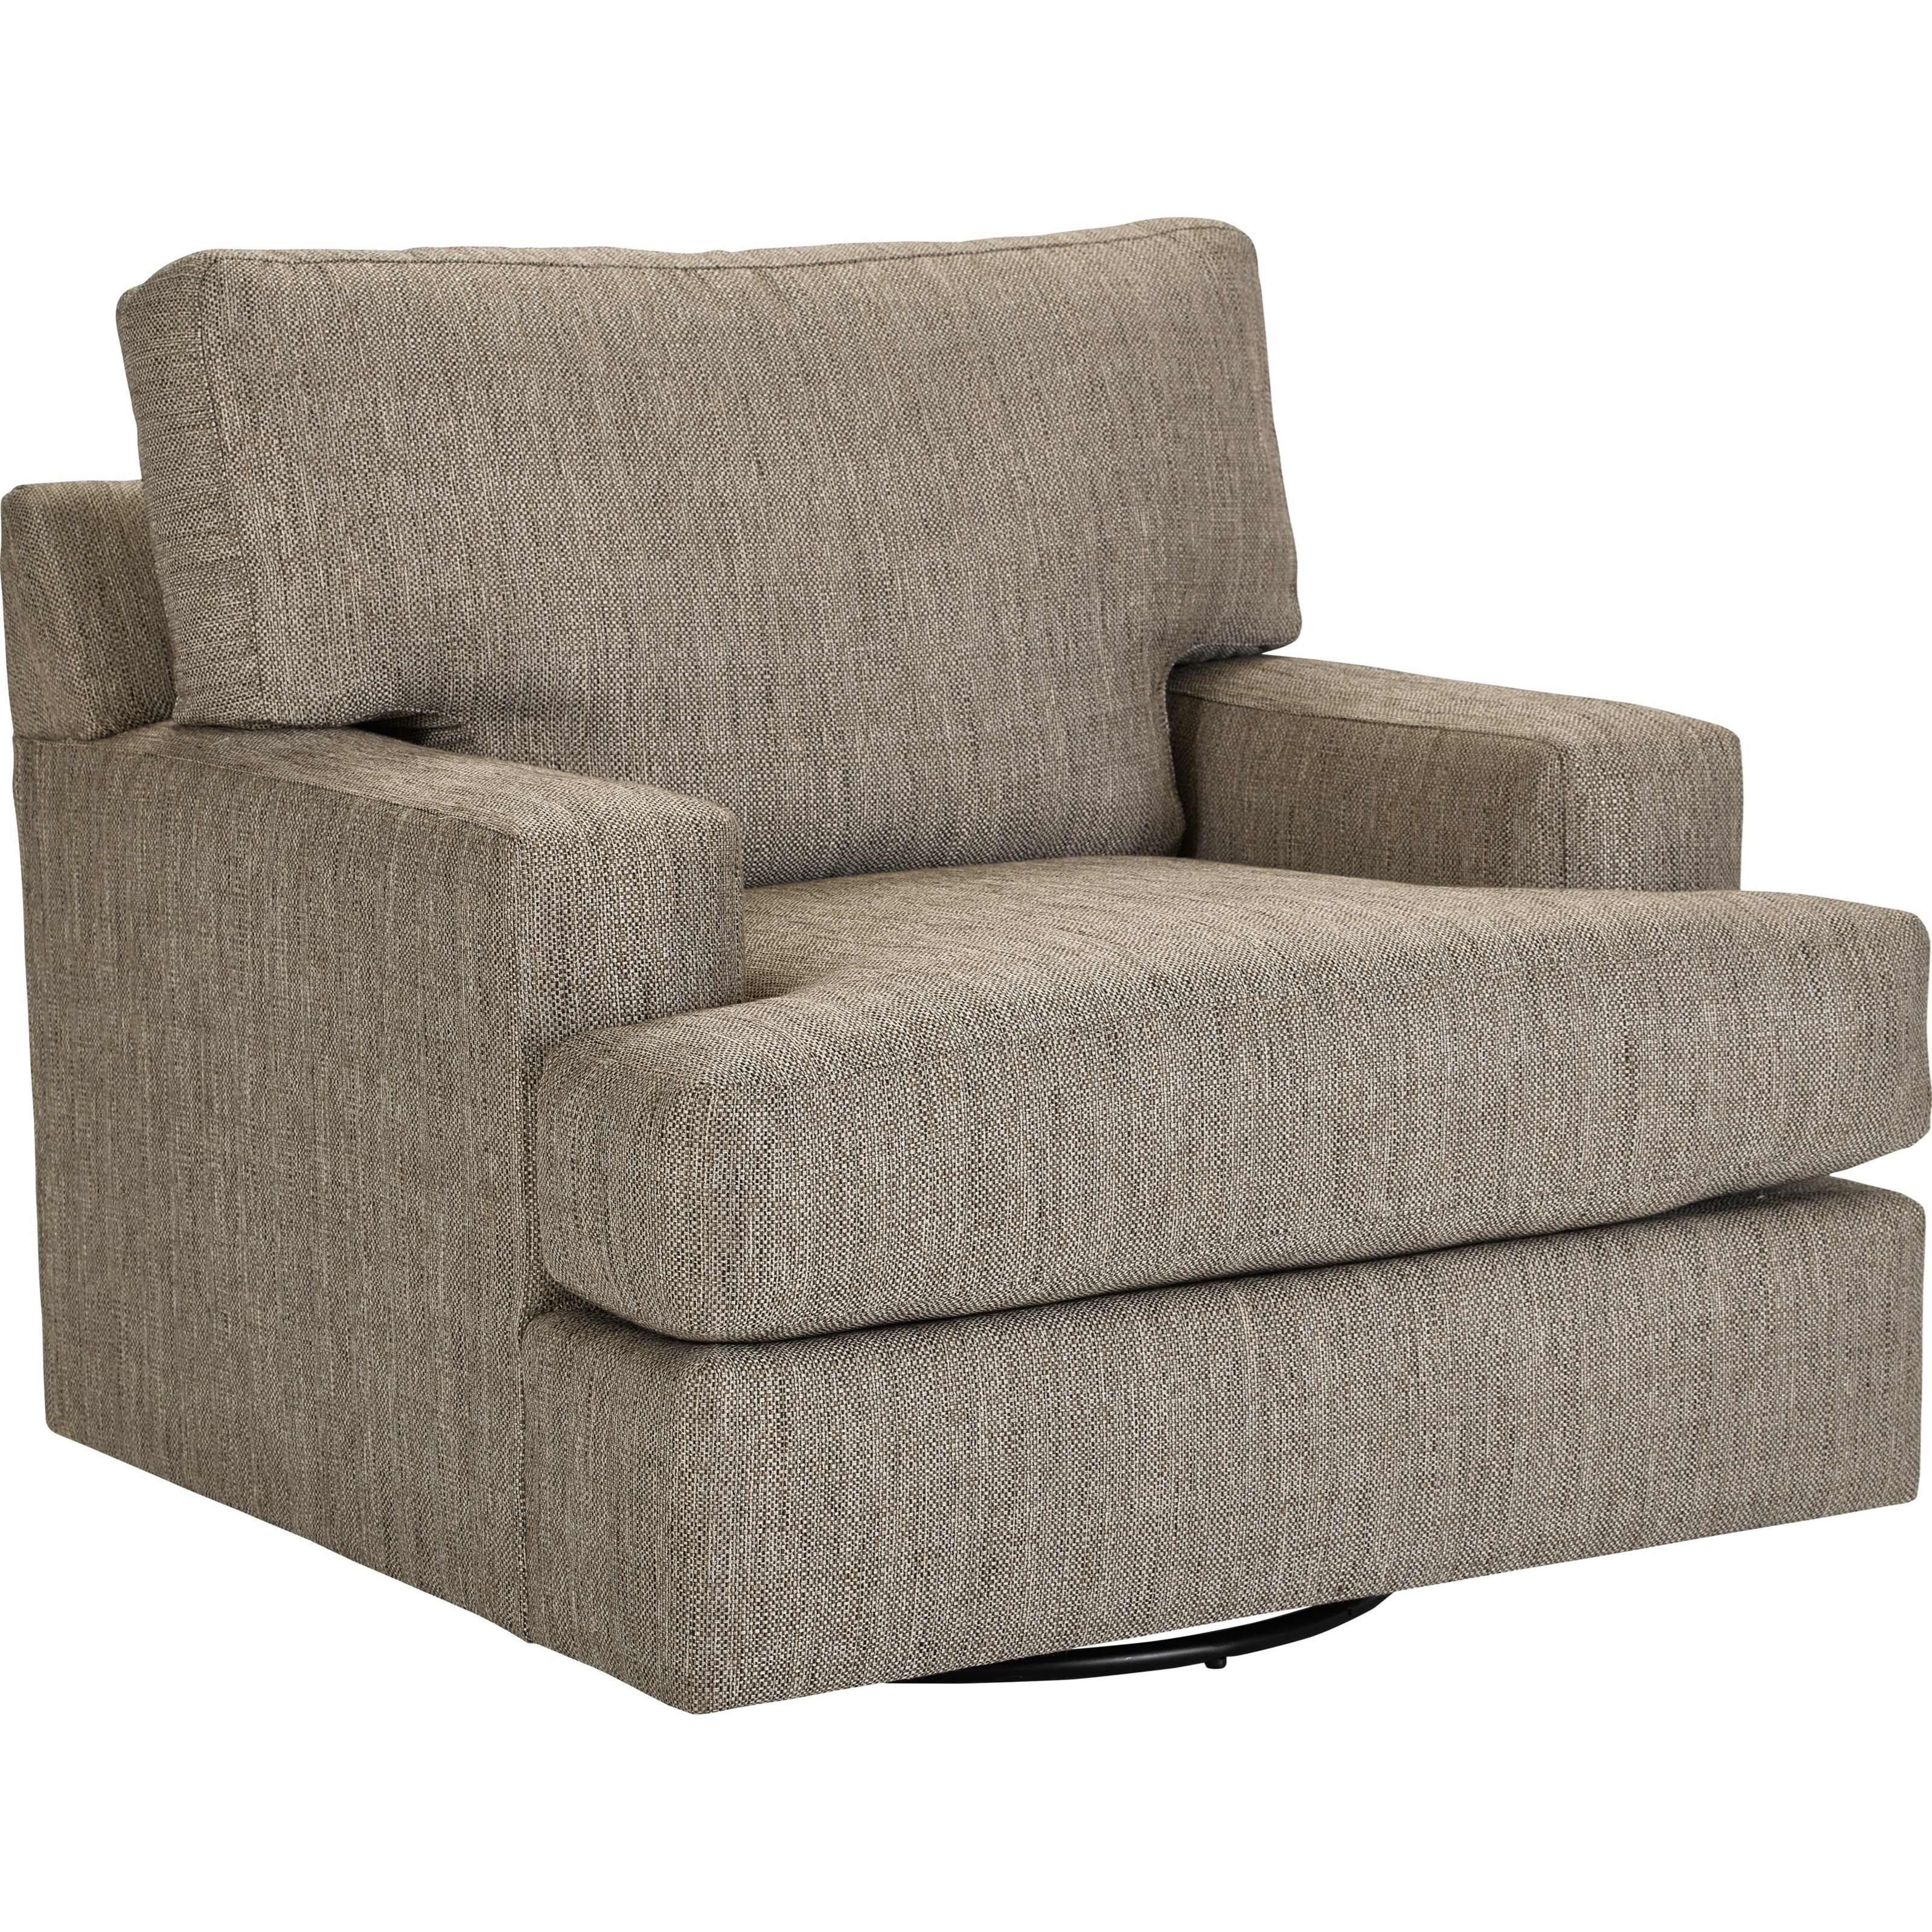 Broyhill Furniture Nash Large Swivel Chair with Track Arms | Lindy's